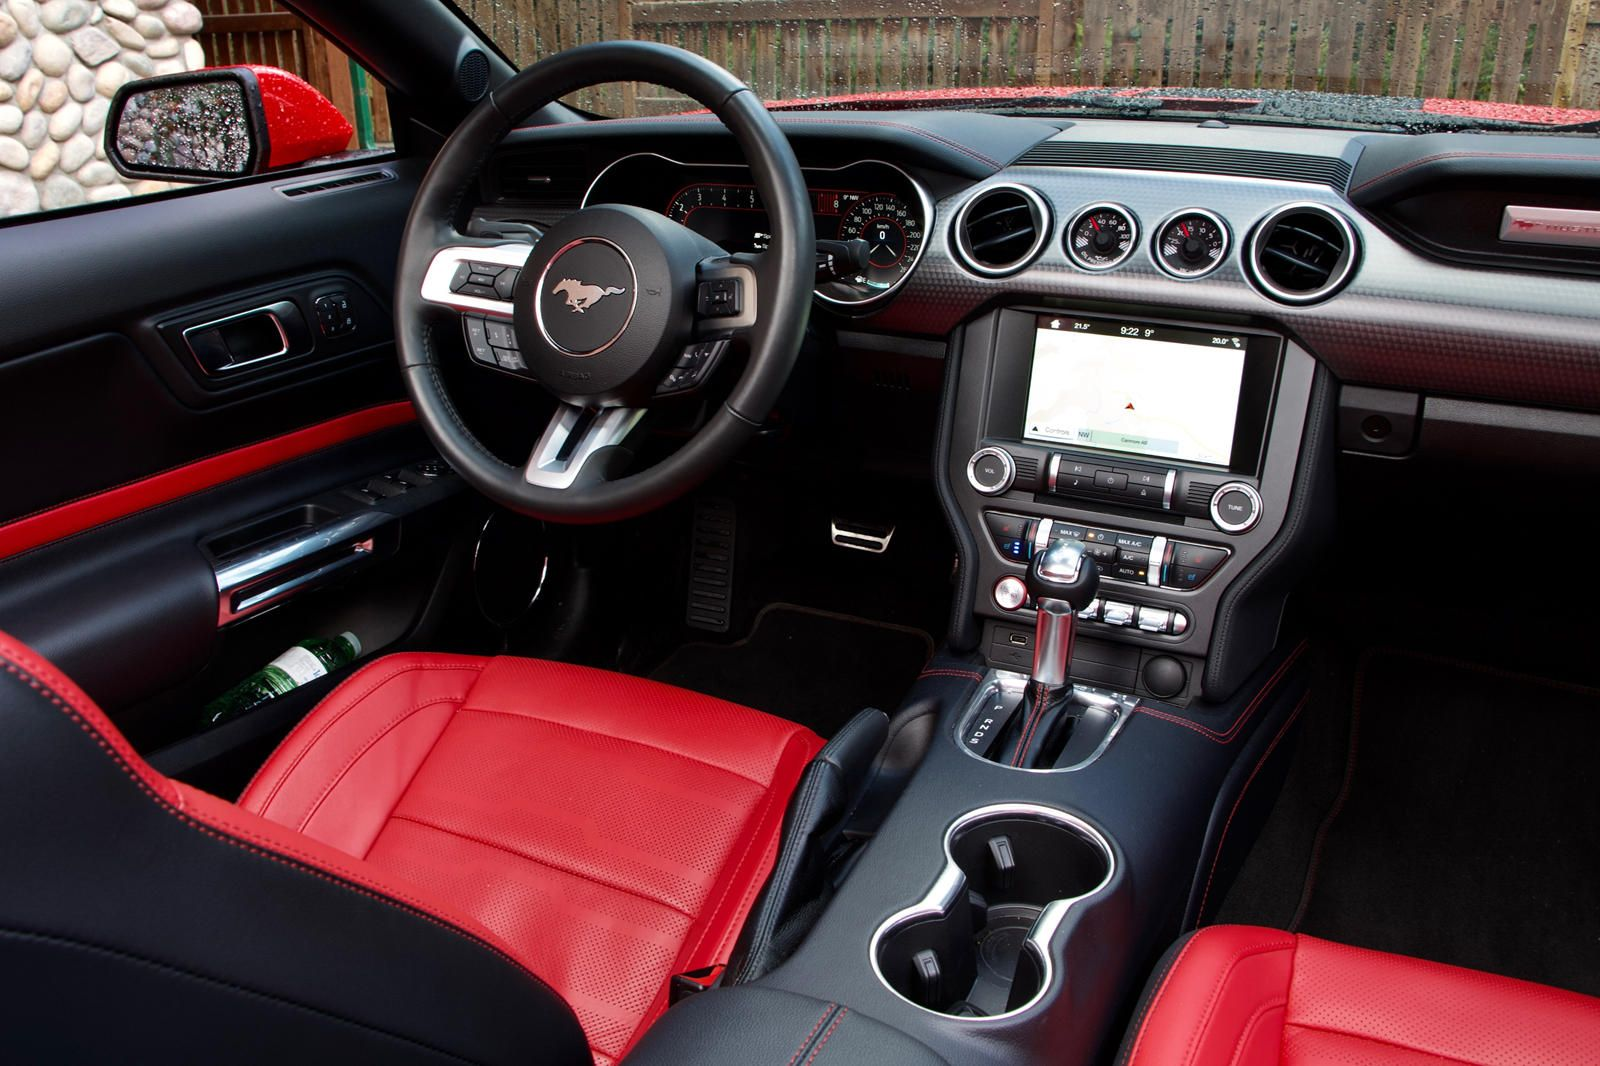 2020 Ford Mustang Gt Convertible Dashboard Photo In 2020 Mustang Gt Ford Mustang Gt Ford Mustang Car